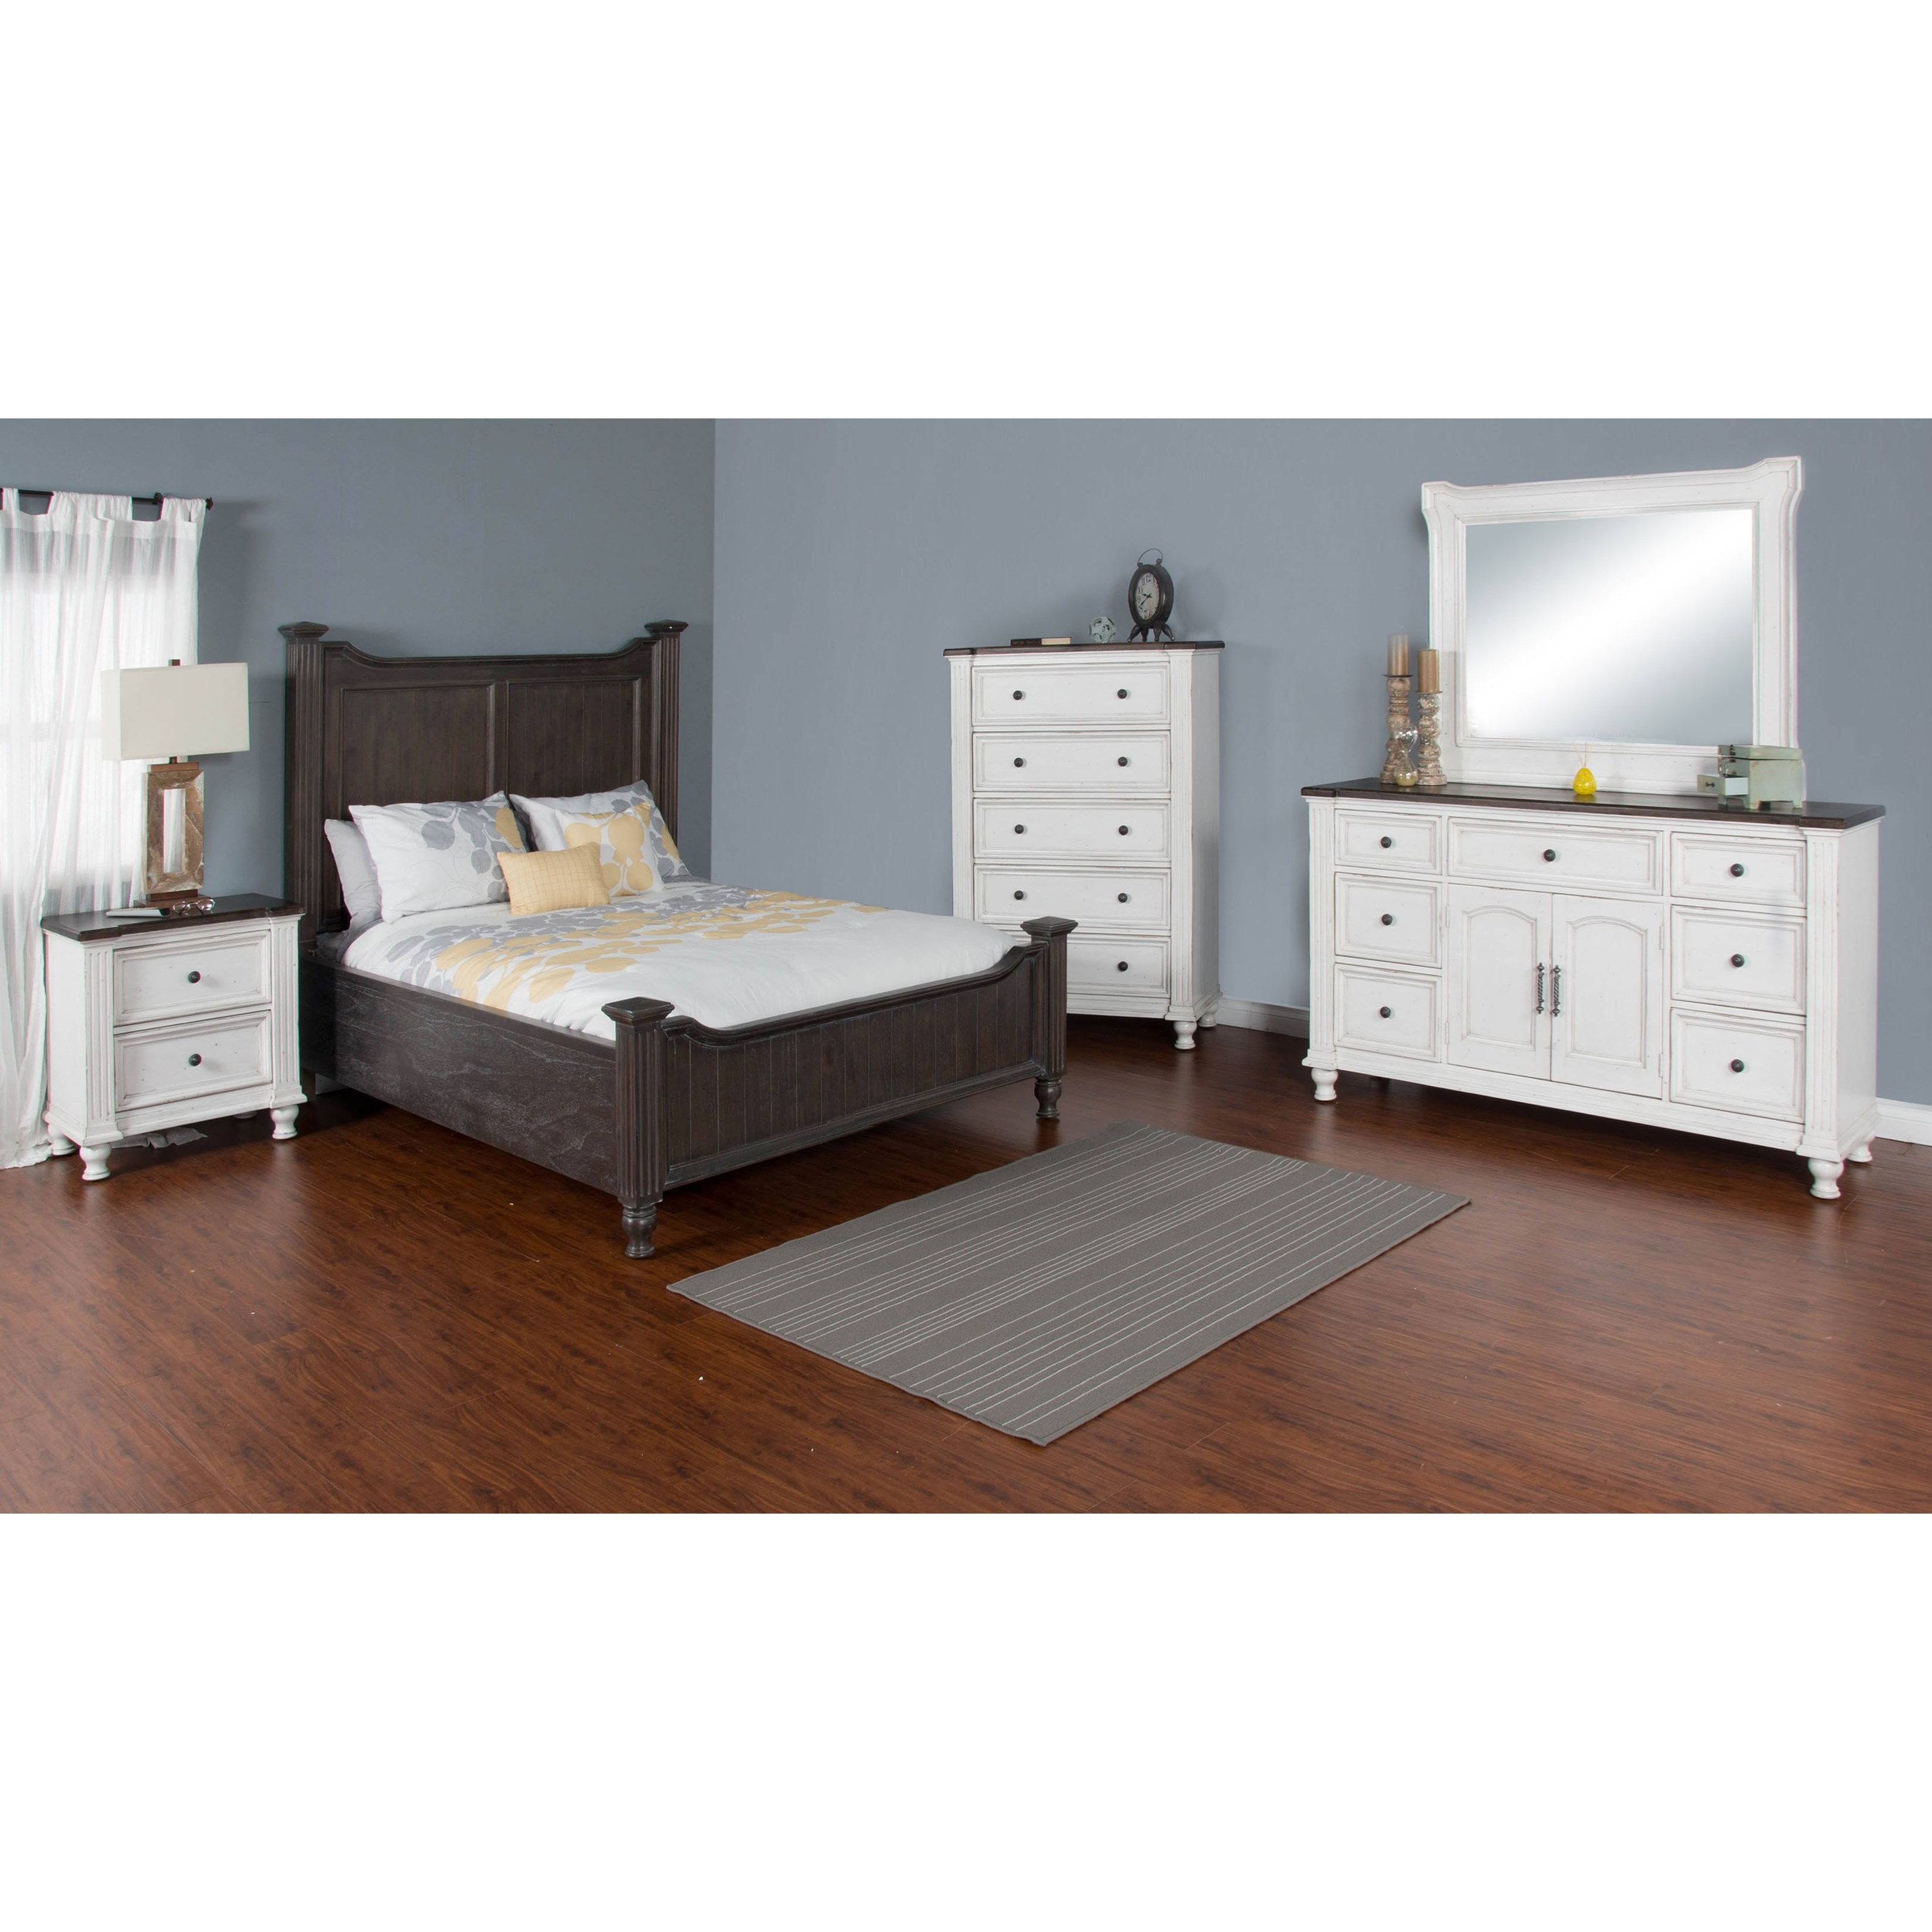 Sunny designs carriage house queen bedroom group conlin 39 s furniture bedroom groups for Sunny designs bedroom furniture